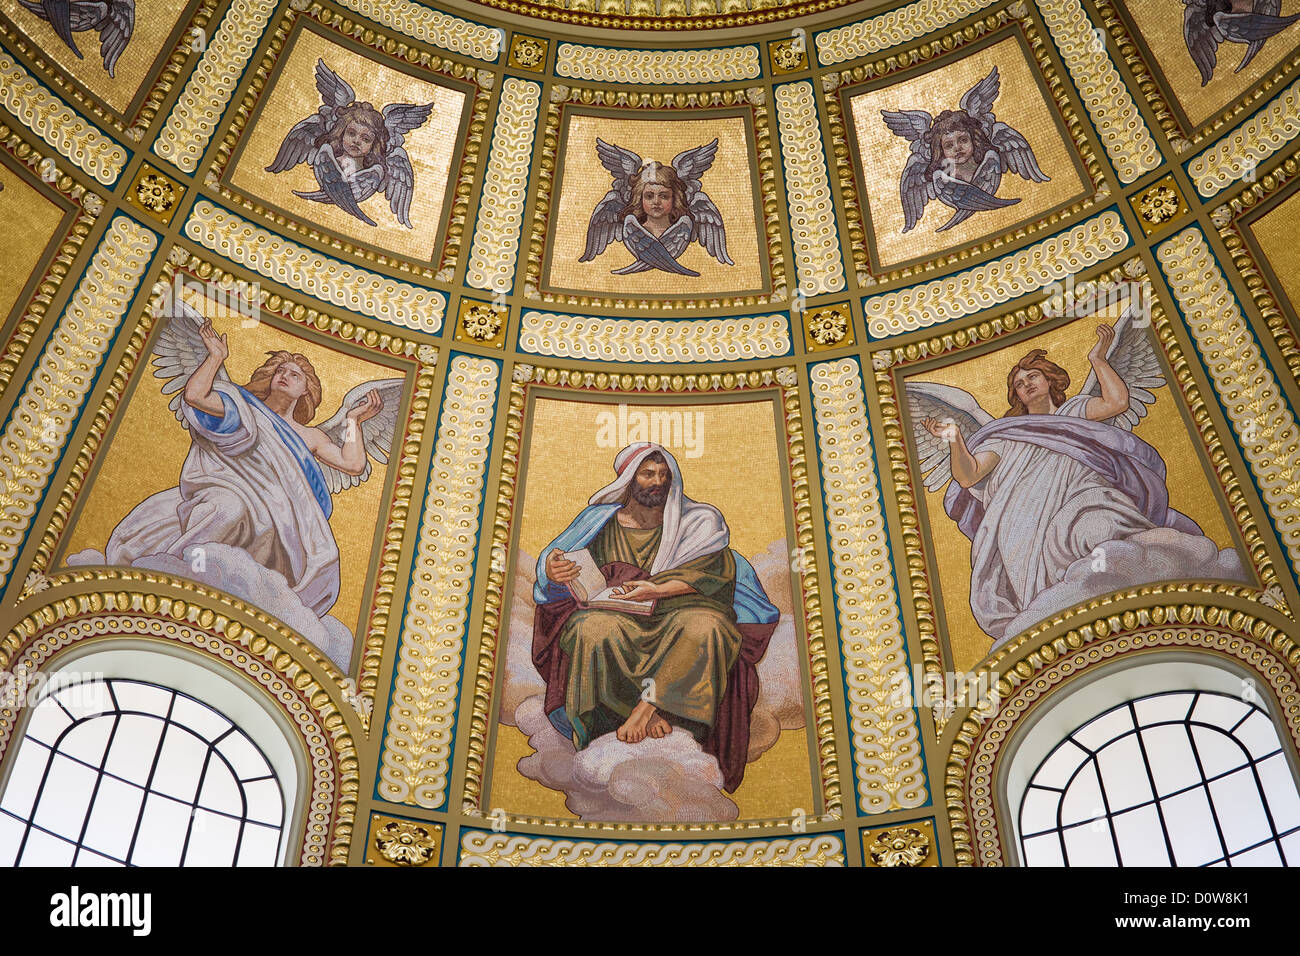 Religious mosaic on dome interior of St Stephen Basilica in Budapest, Hungary. Stock Photo